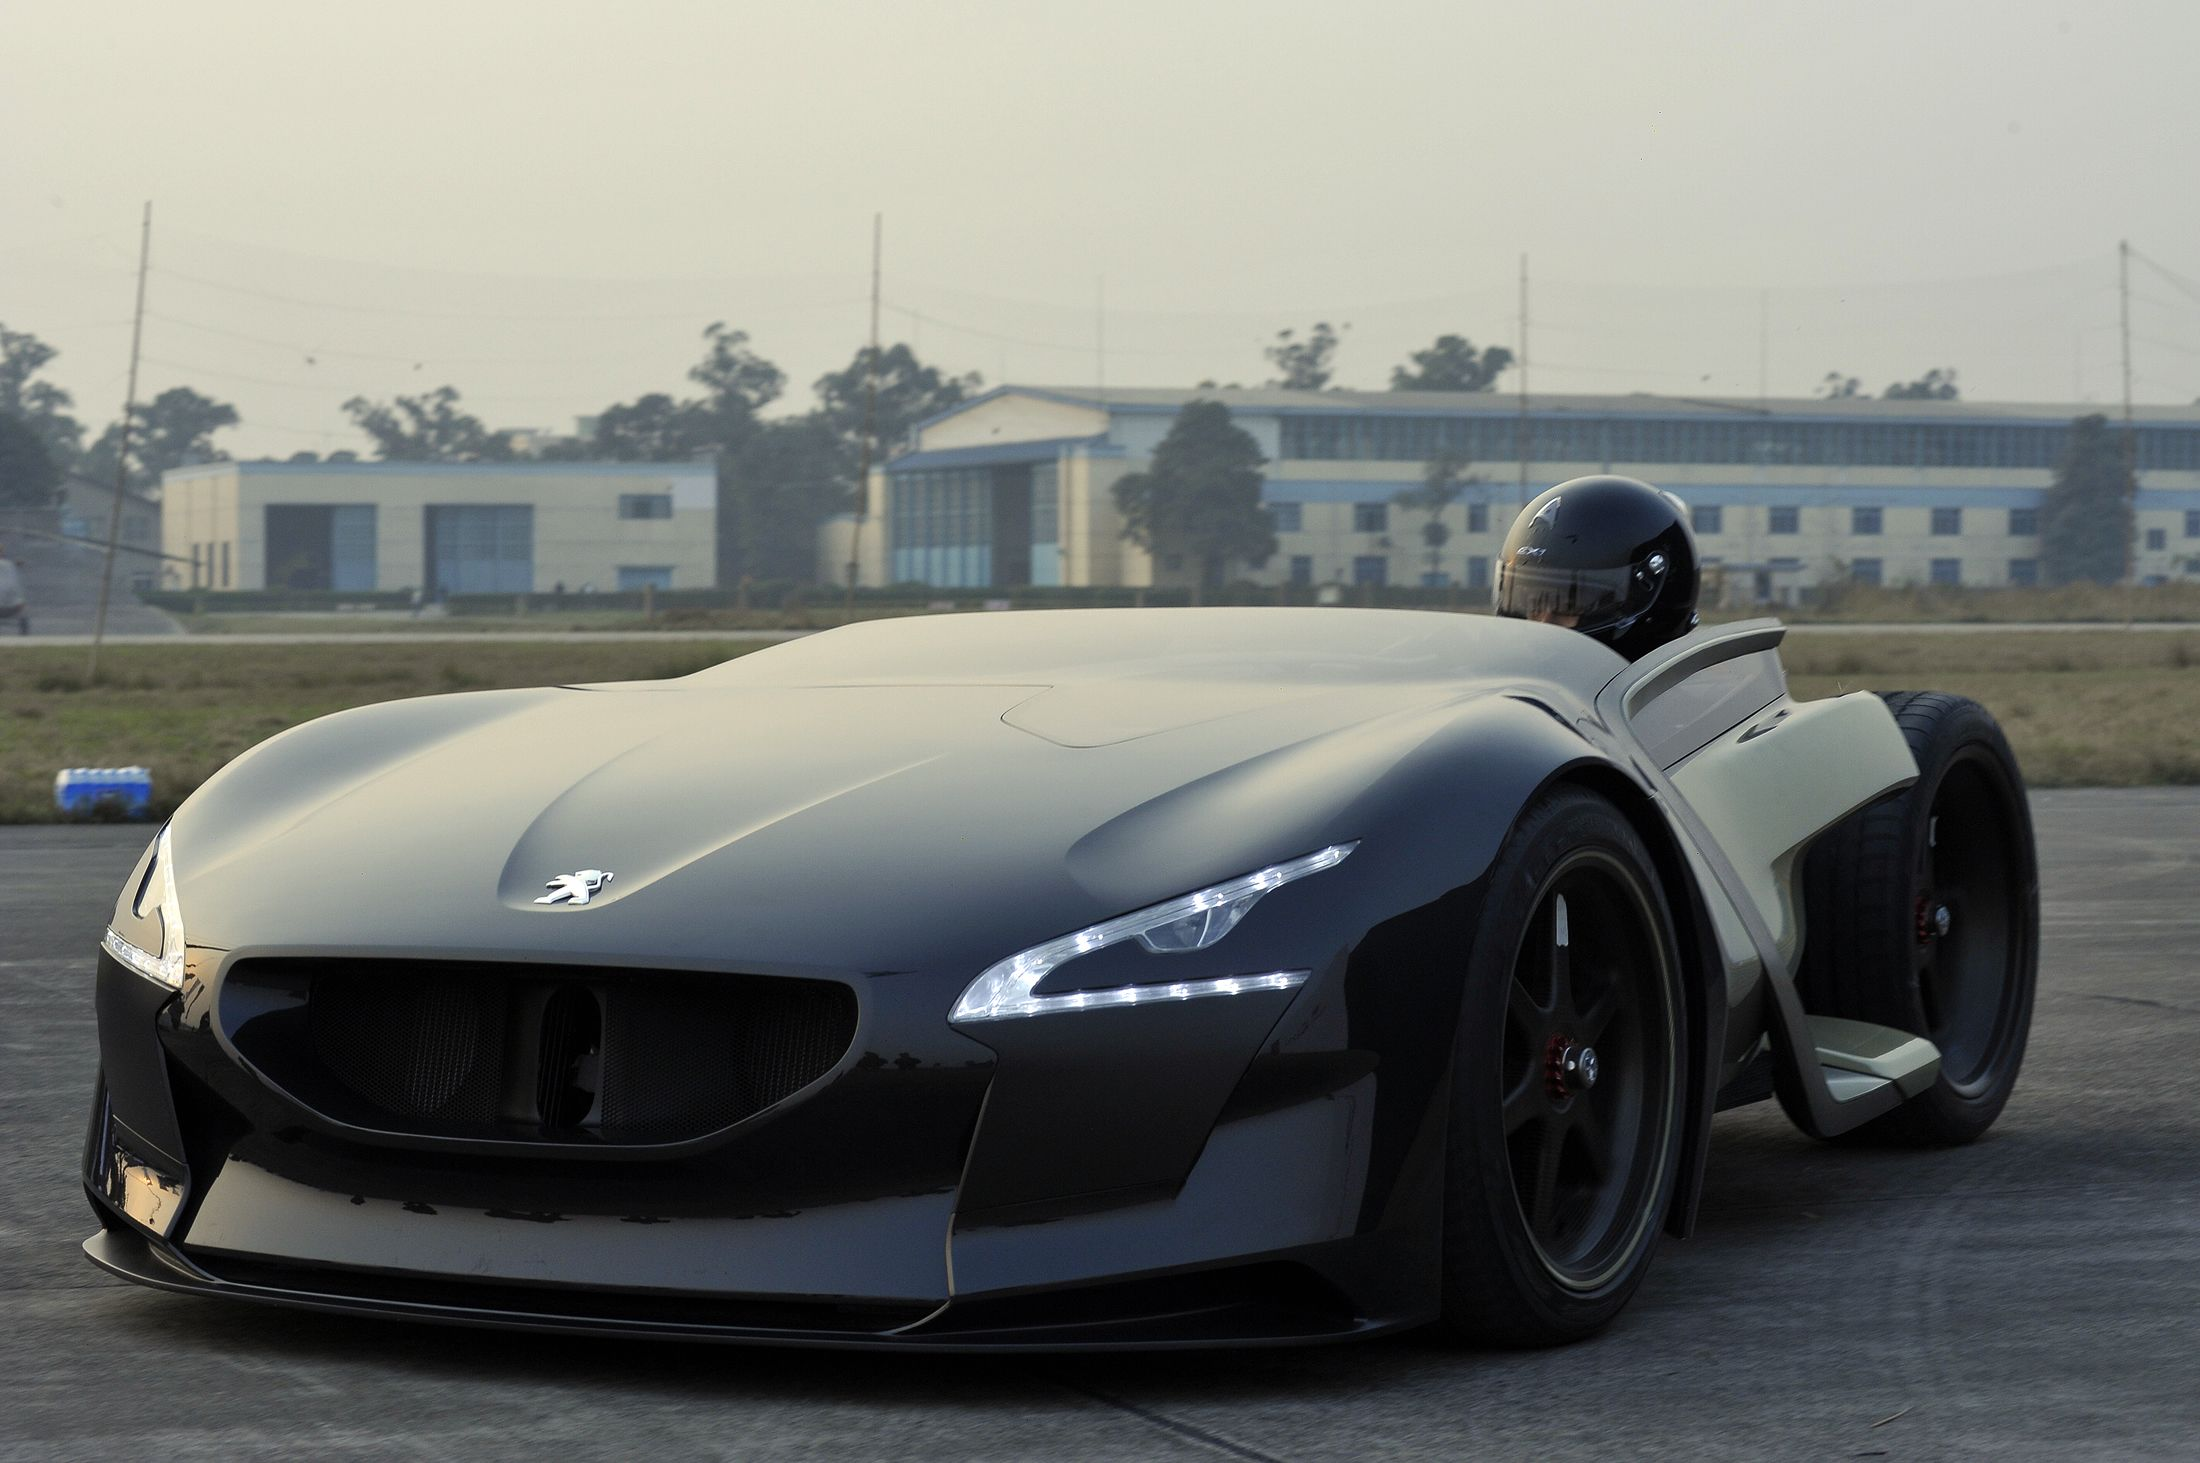 The Mighty Peugeot With Images Electric Sports Car